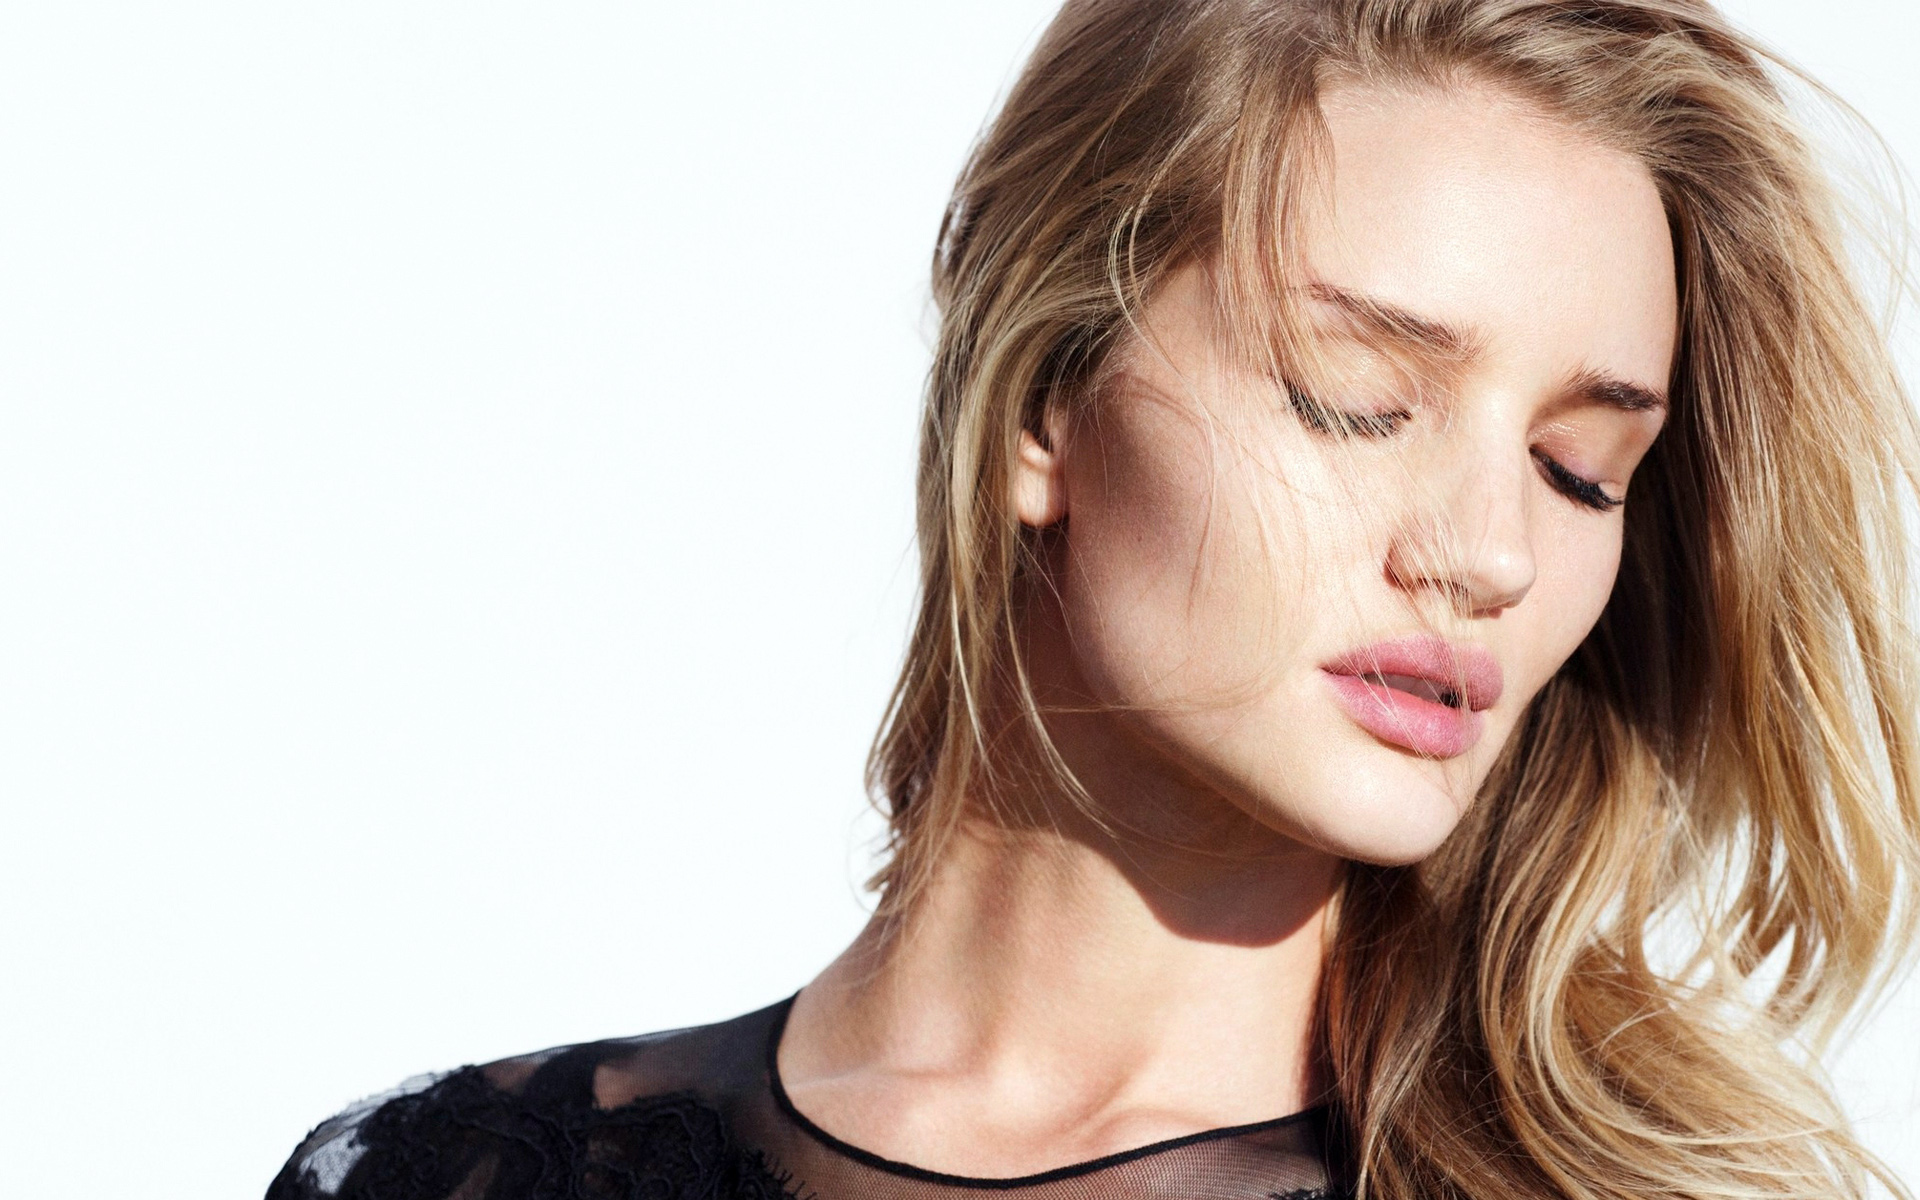 Transformers Actress Rosie Huntington Whiteley wallpaper